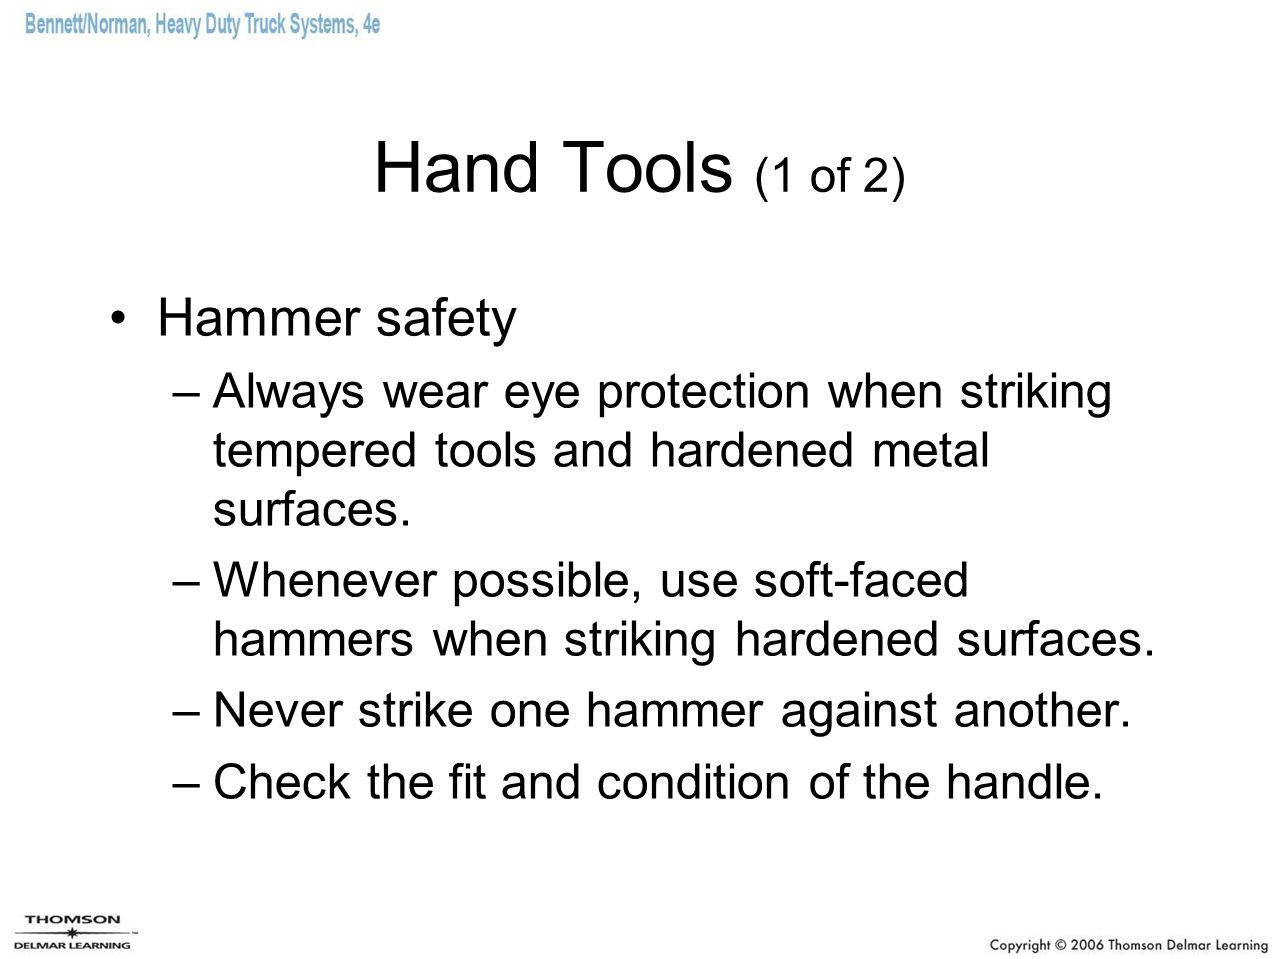 Hand Tools (1 of 2) Hammer safety